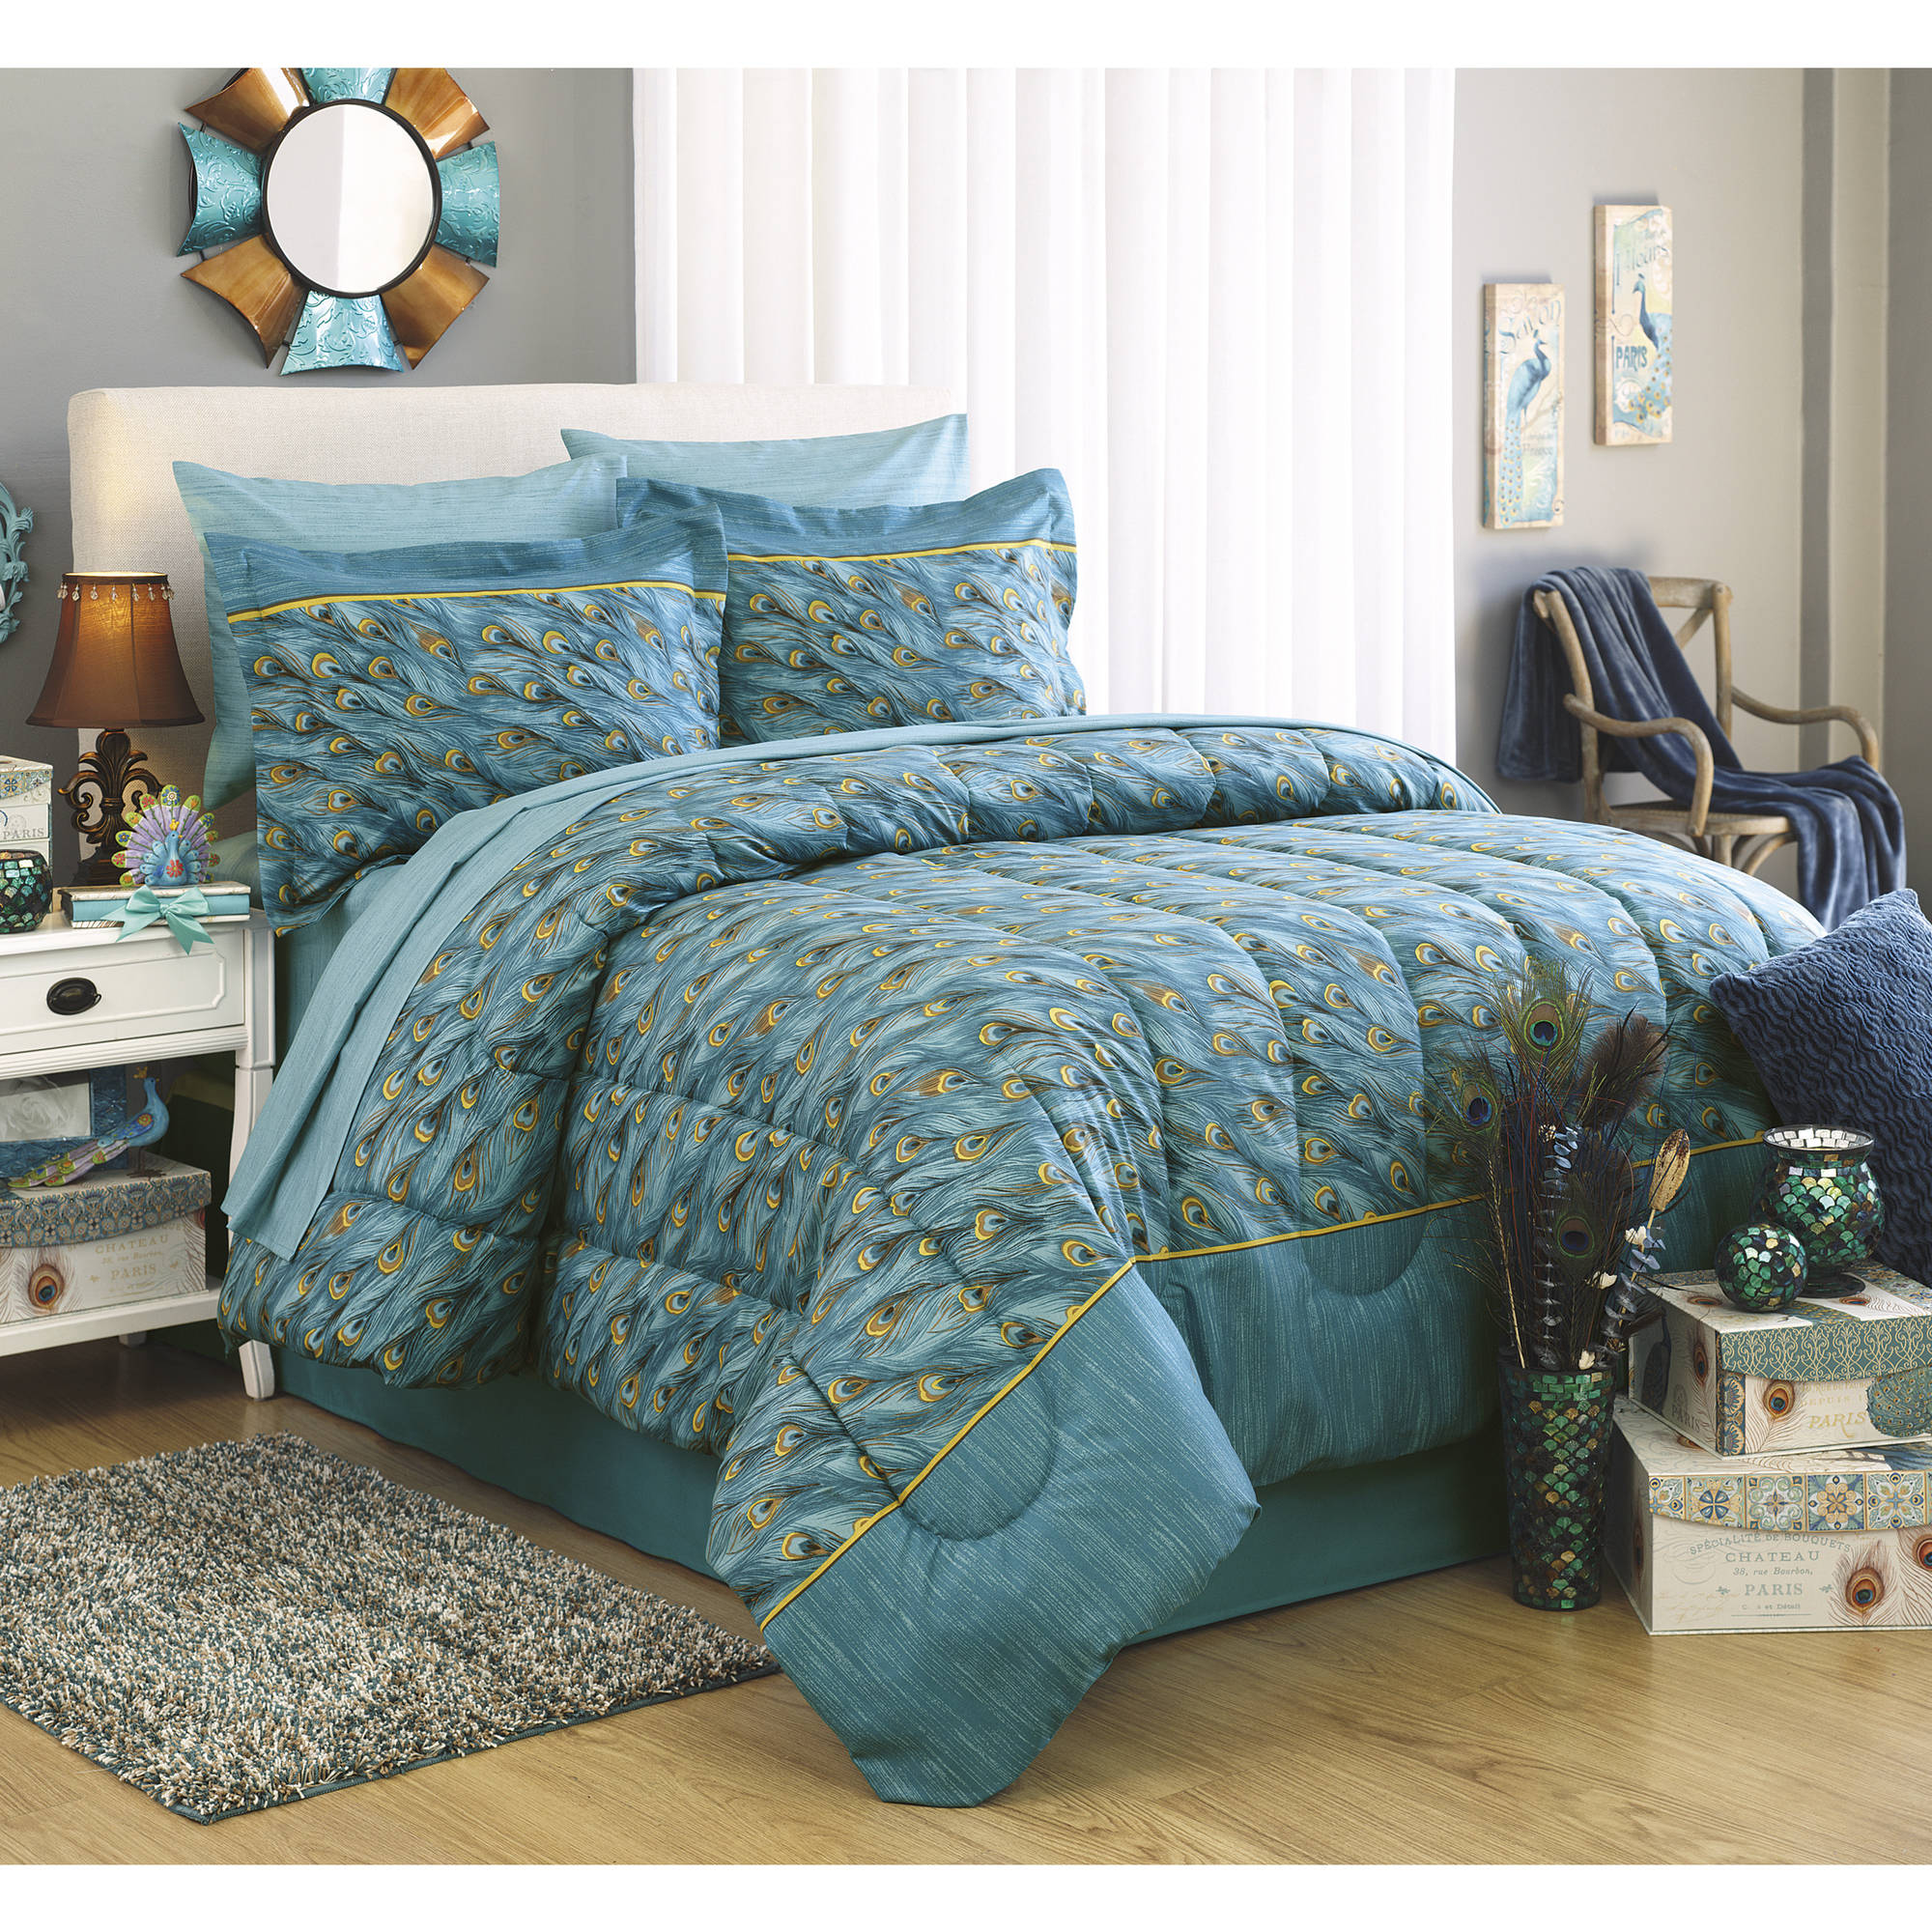 First At Home King Peacock Bed in a Bag Bedding Set, Teal